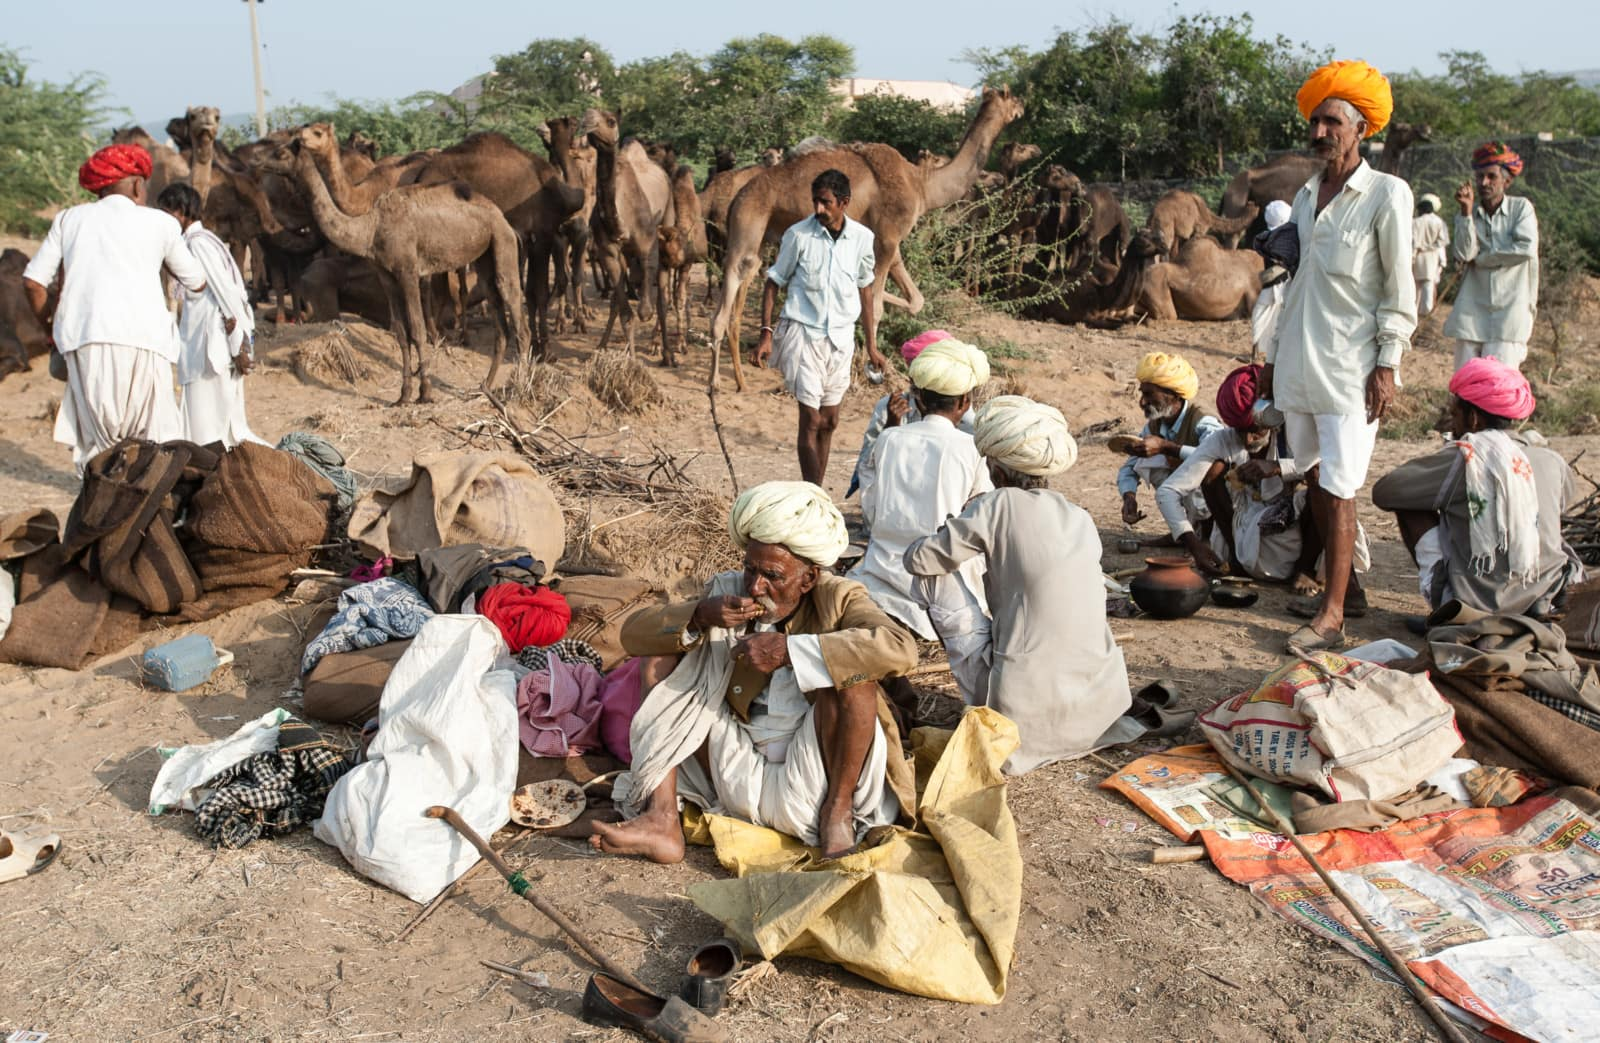 camel-traders-camel-pushkar-camel-fair-london-freelance-photographer-richard-isaac-3200